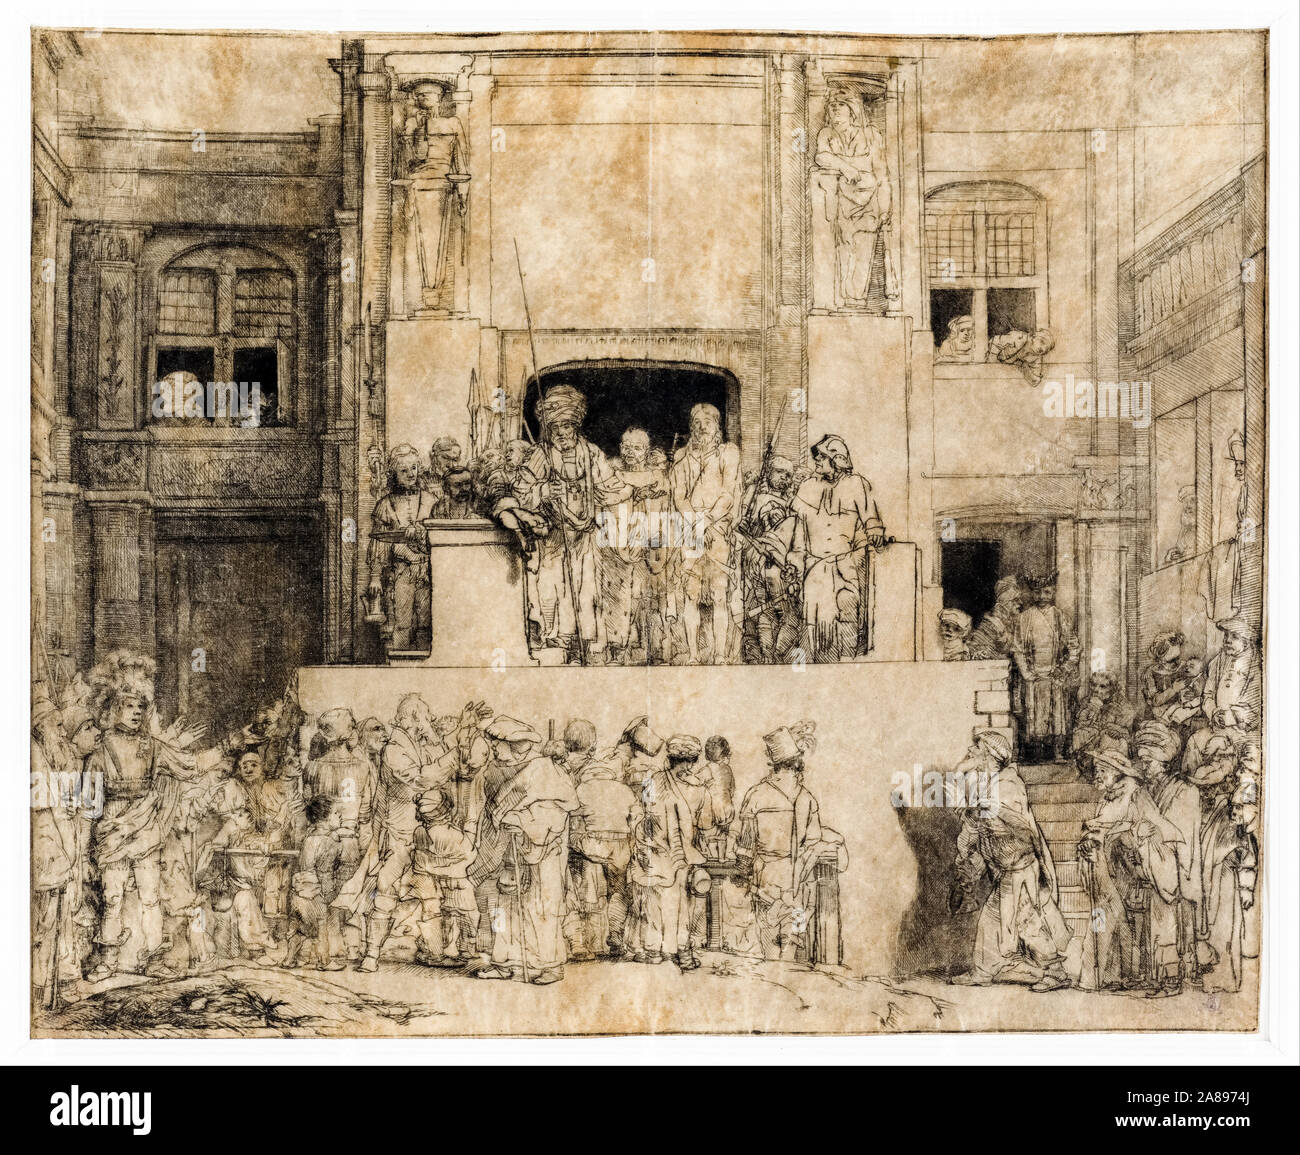 Rembrandt van Rijn, Christ presented to the people, (the oblong plate), etching, 1655 Stock Photo